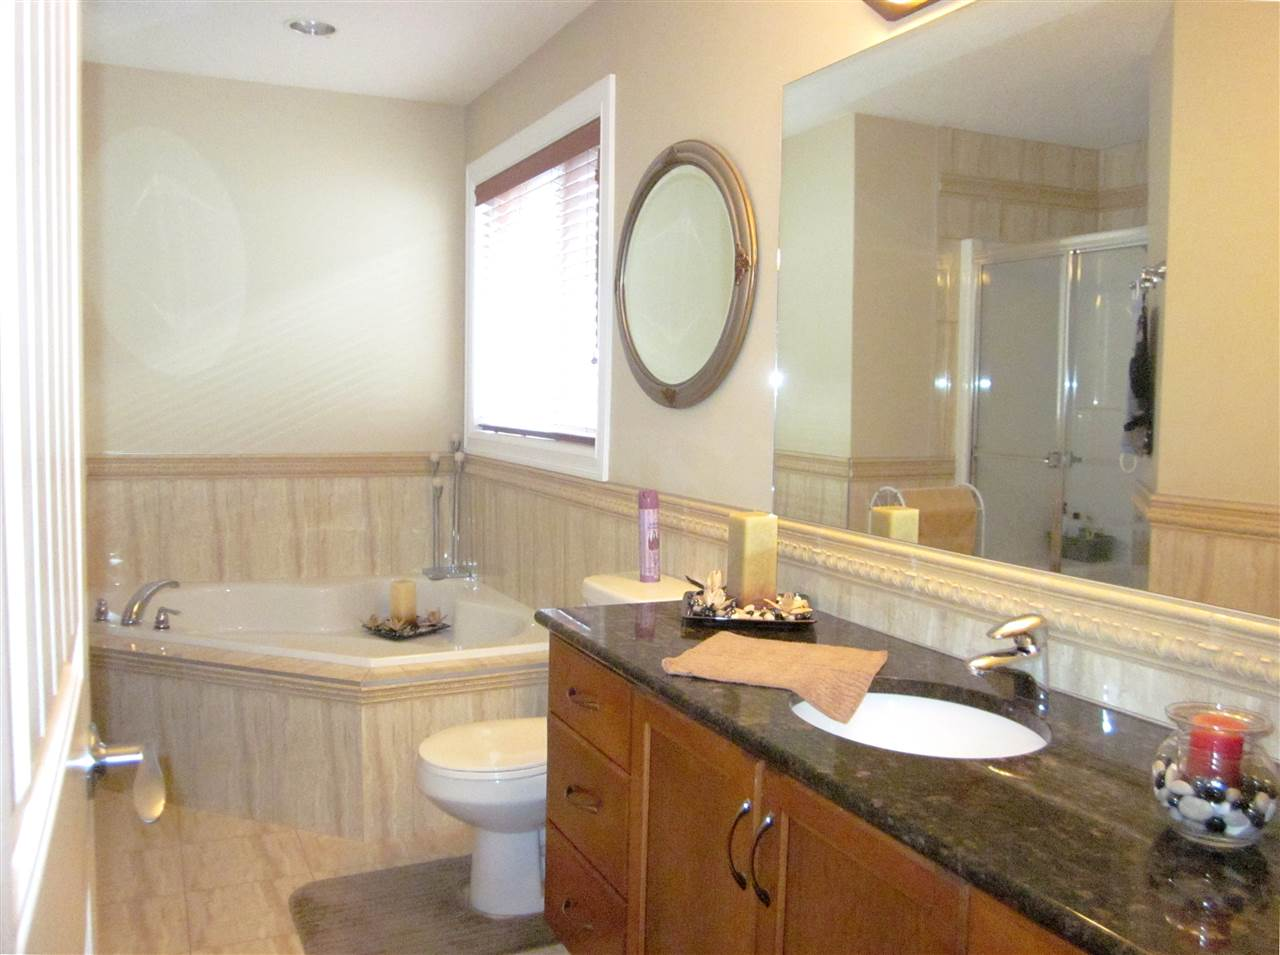 Lovely 4 pcs. master ensuite has granite vanity top, jetted tub, and separate shower.